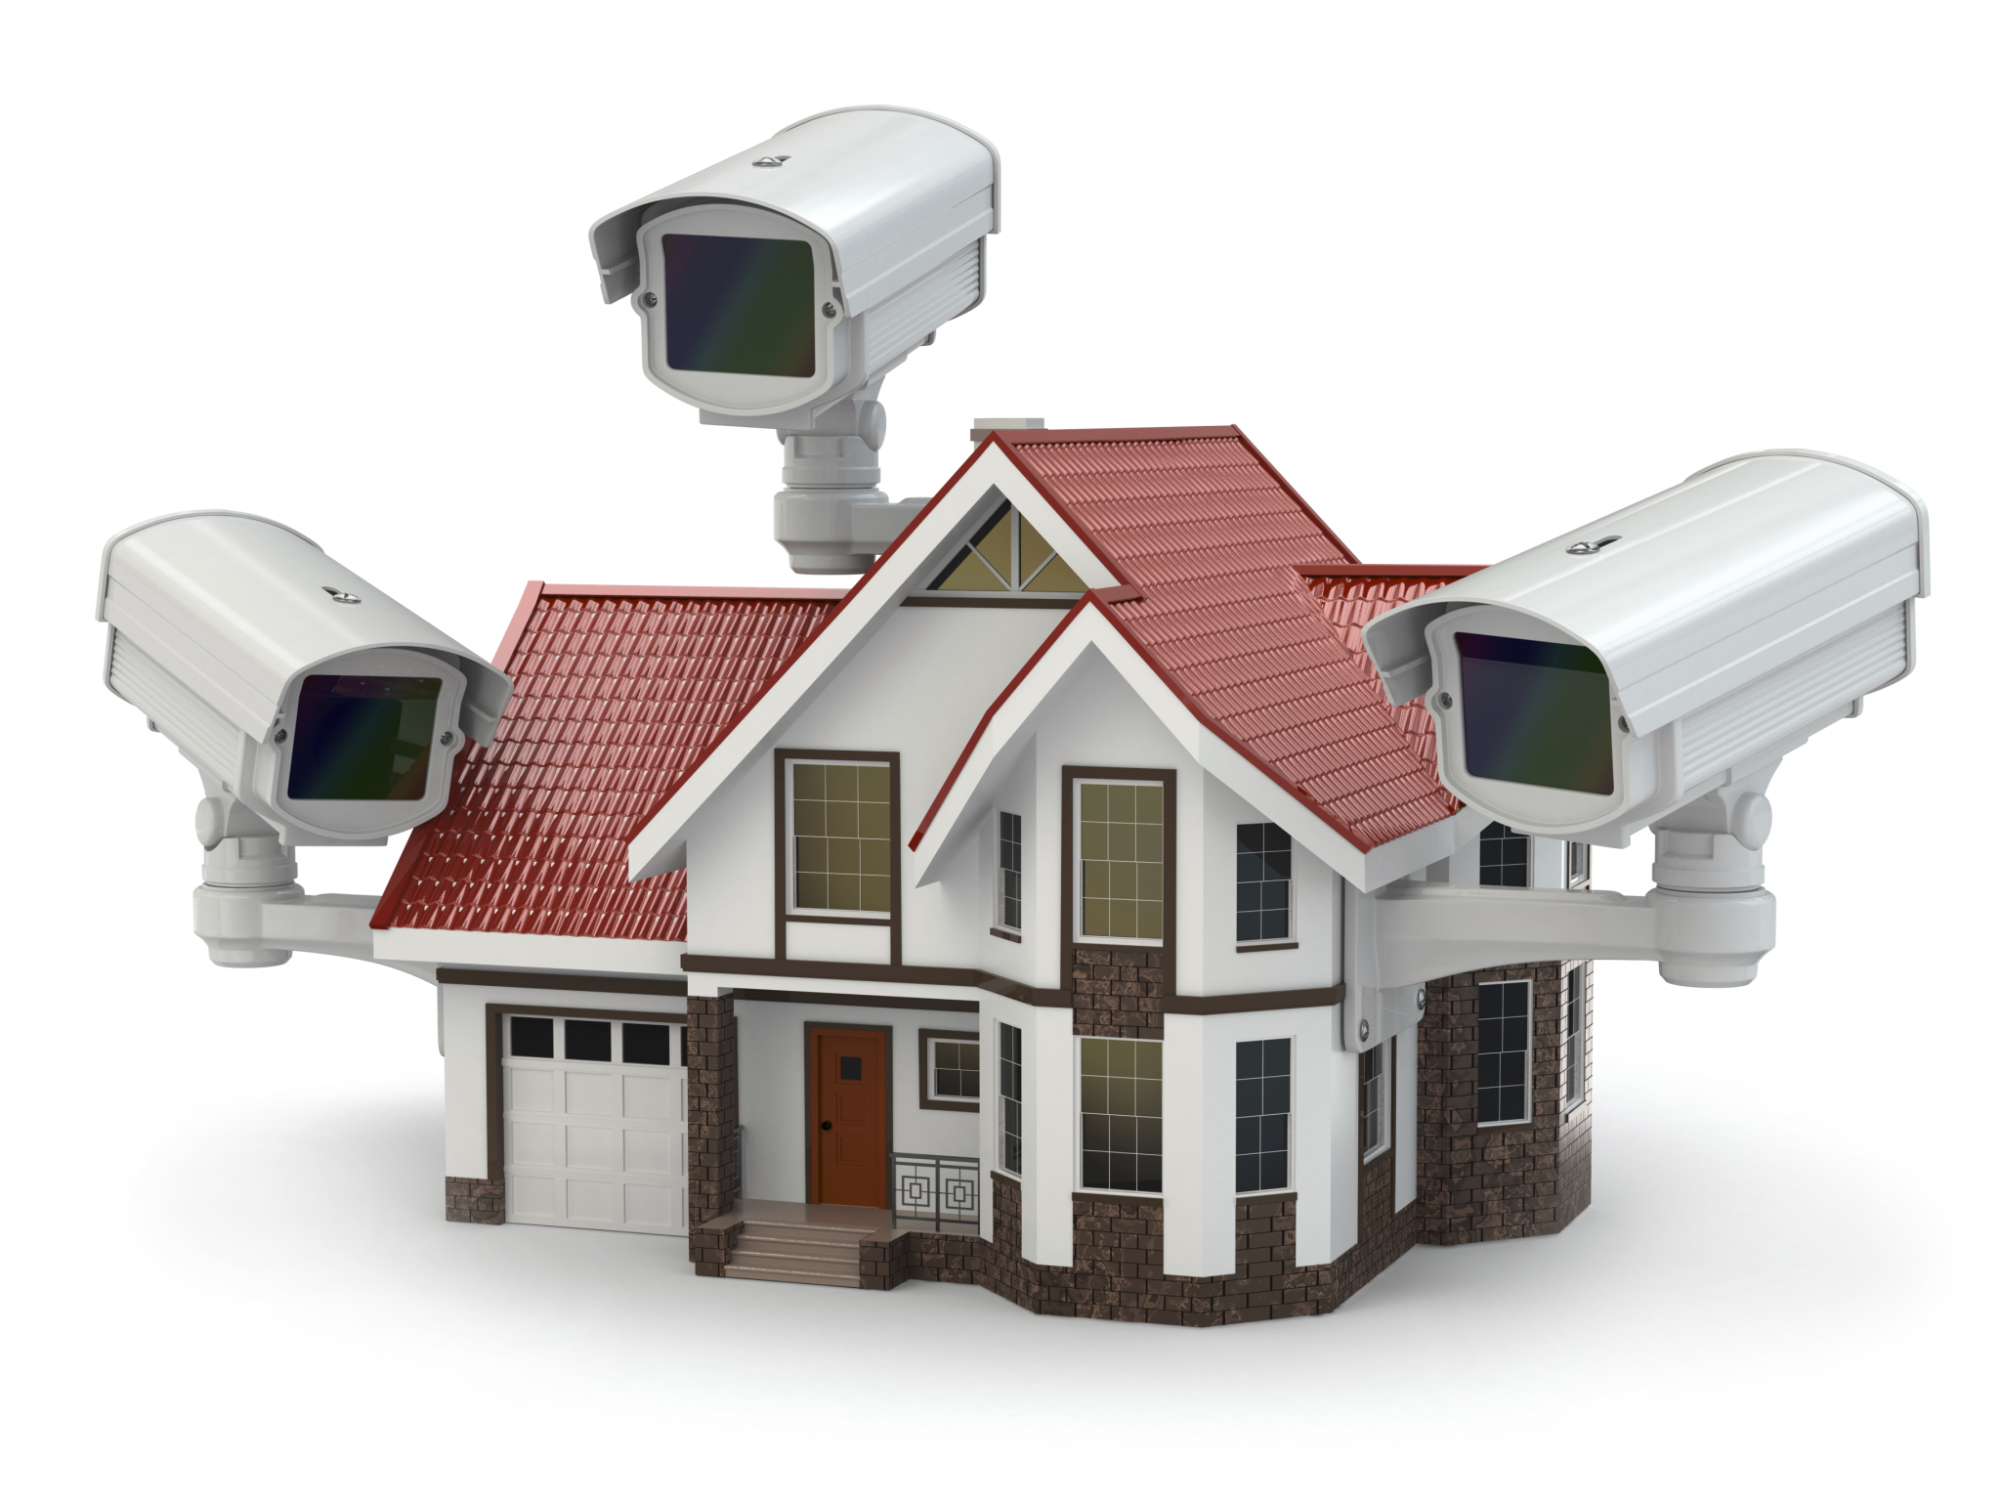 The Dos And Donts Of Installing Home Surveillance Cameras Wiring Exterior Soffit Lights Survellience